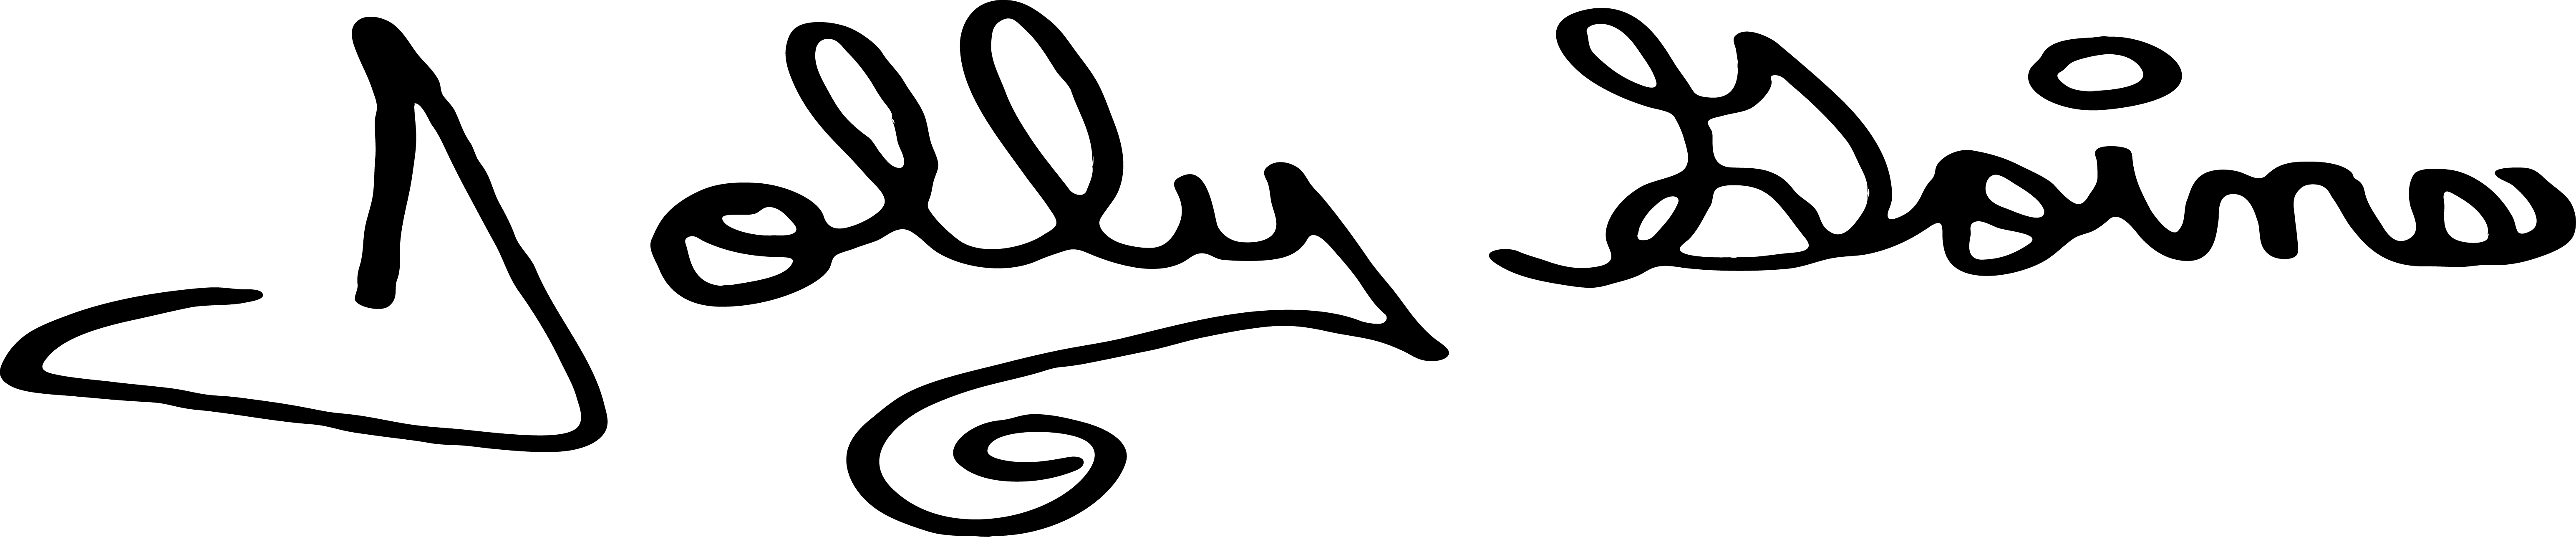 Jolly Goins Signature